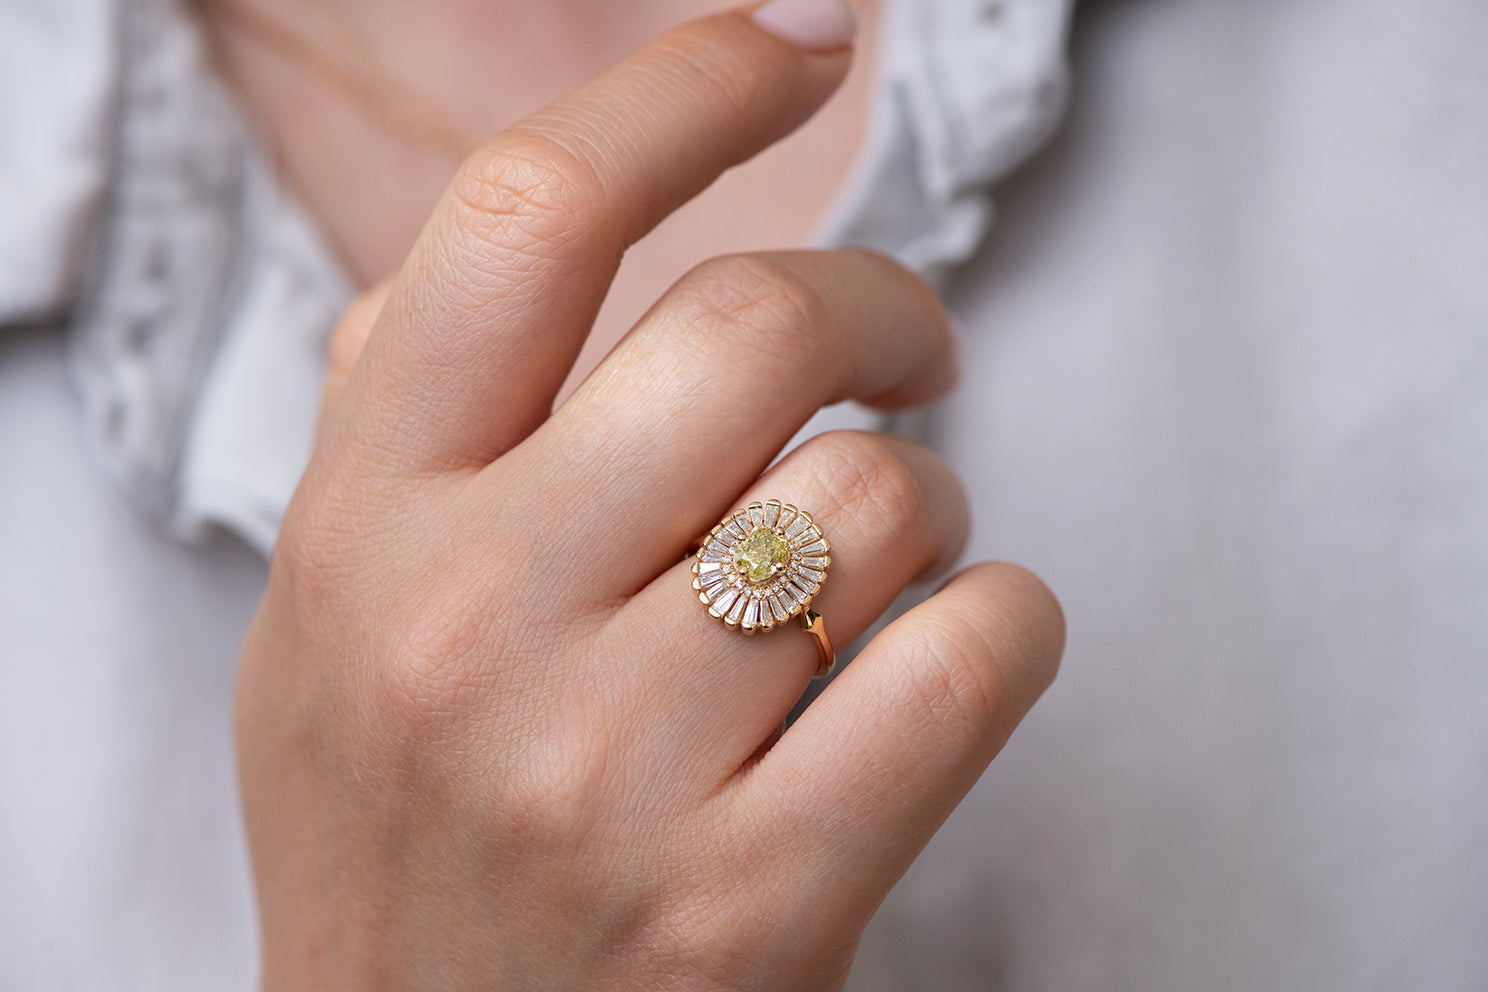 Daisy Engagement Ring - Fancy Yellow Diamond and Baguette Diamond Ring Front Shot on Hand